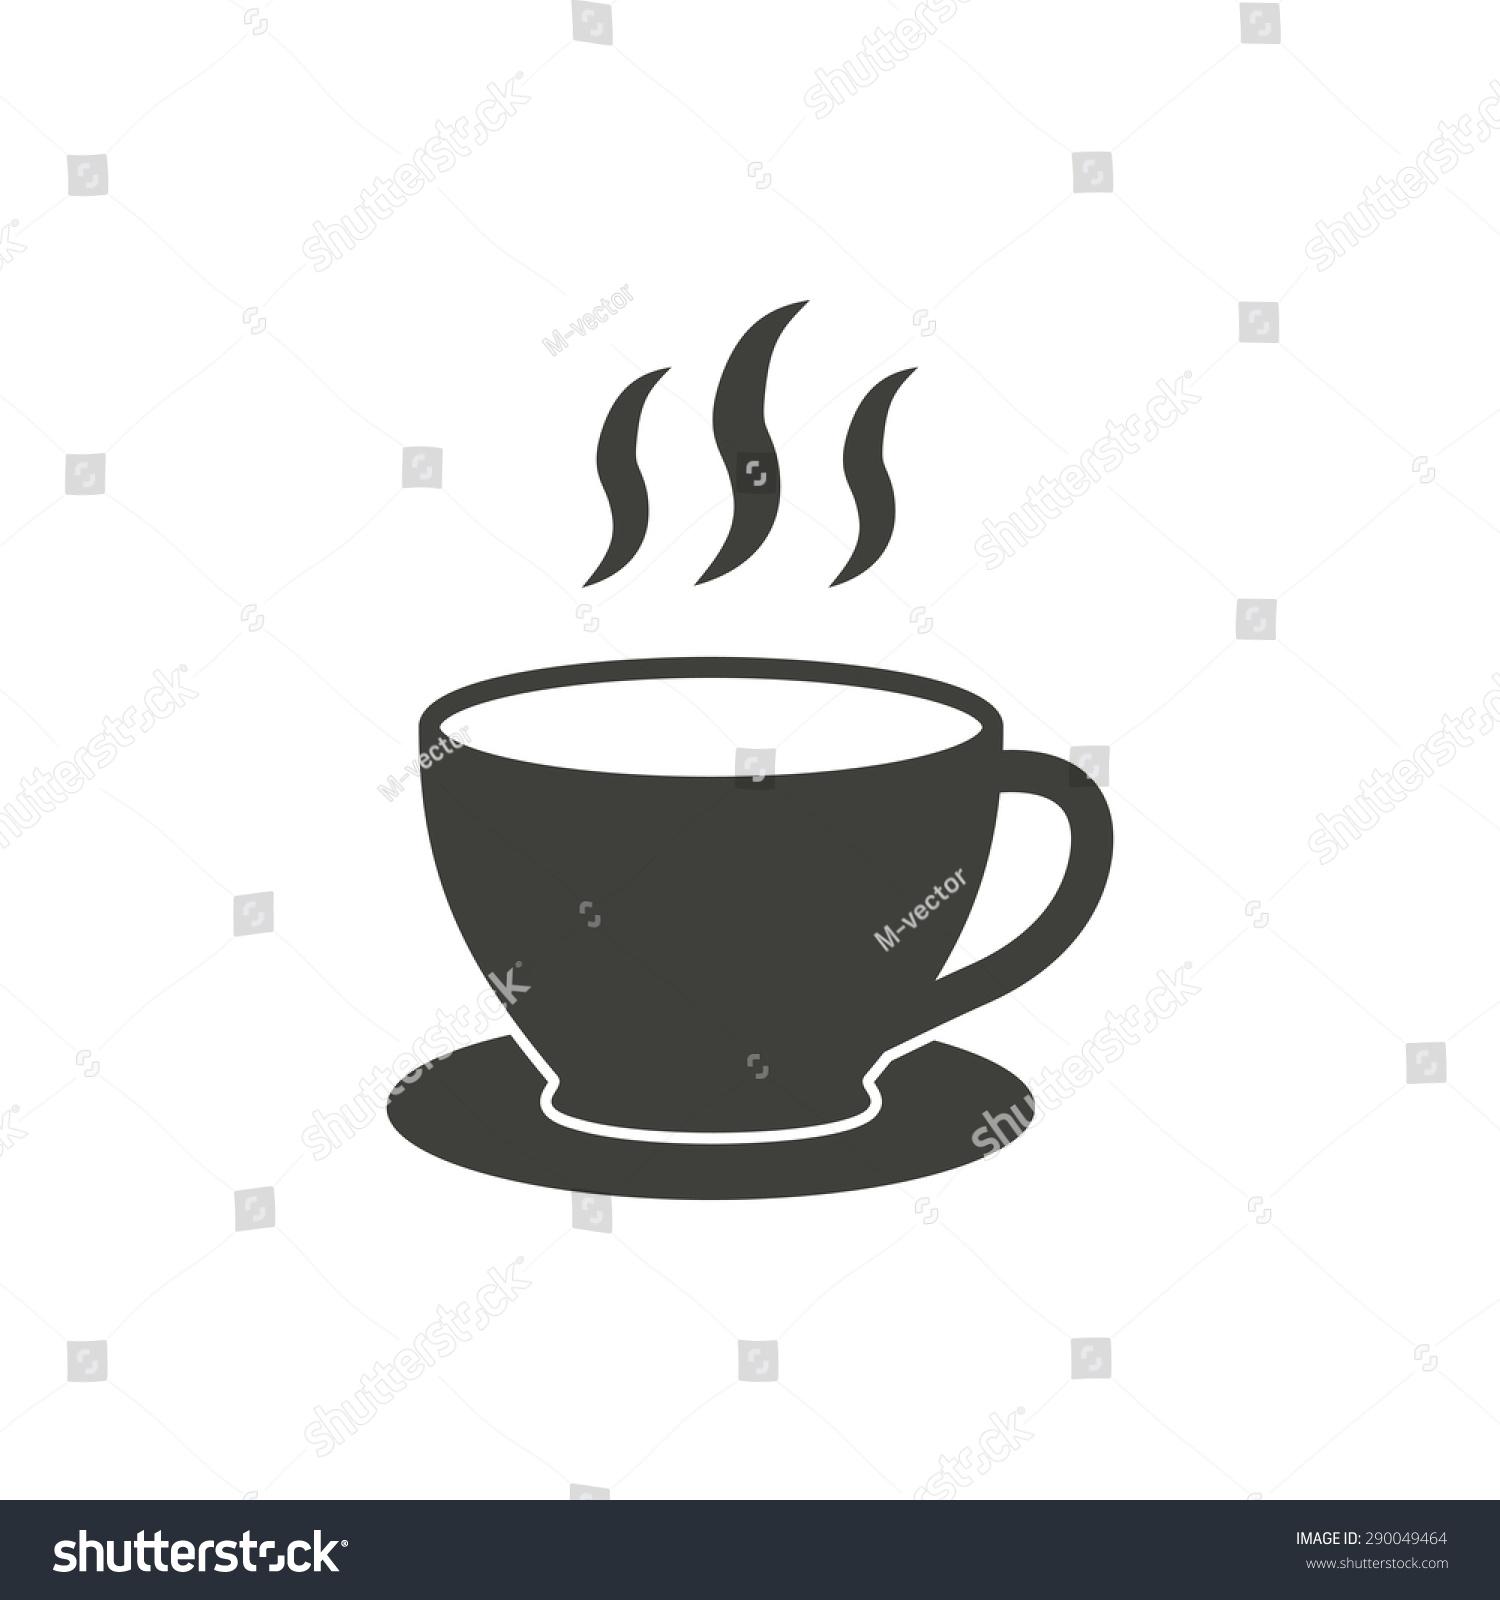 Coffee cup vector free - Coffee Cup Vector Icon In Black On A White Background